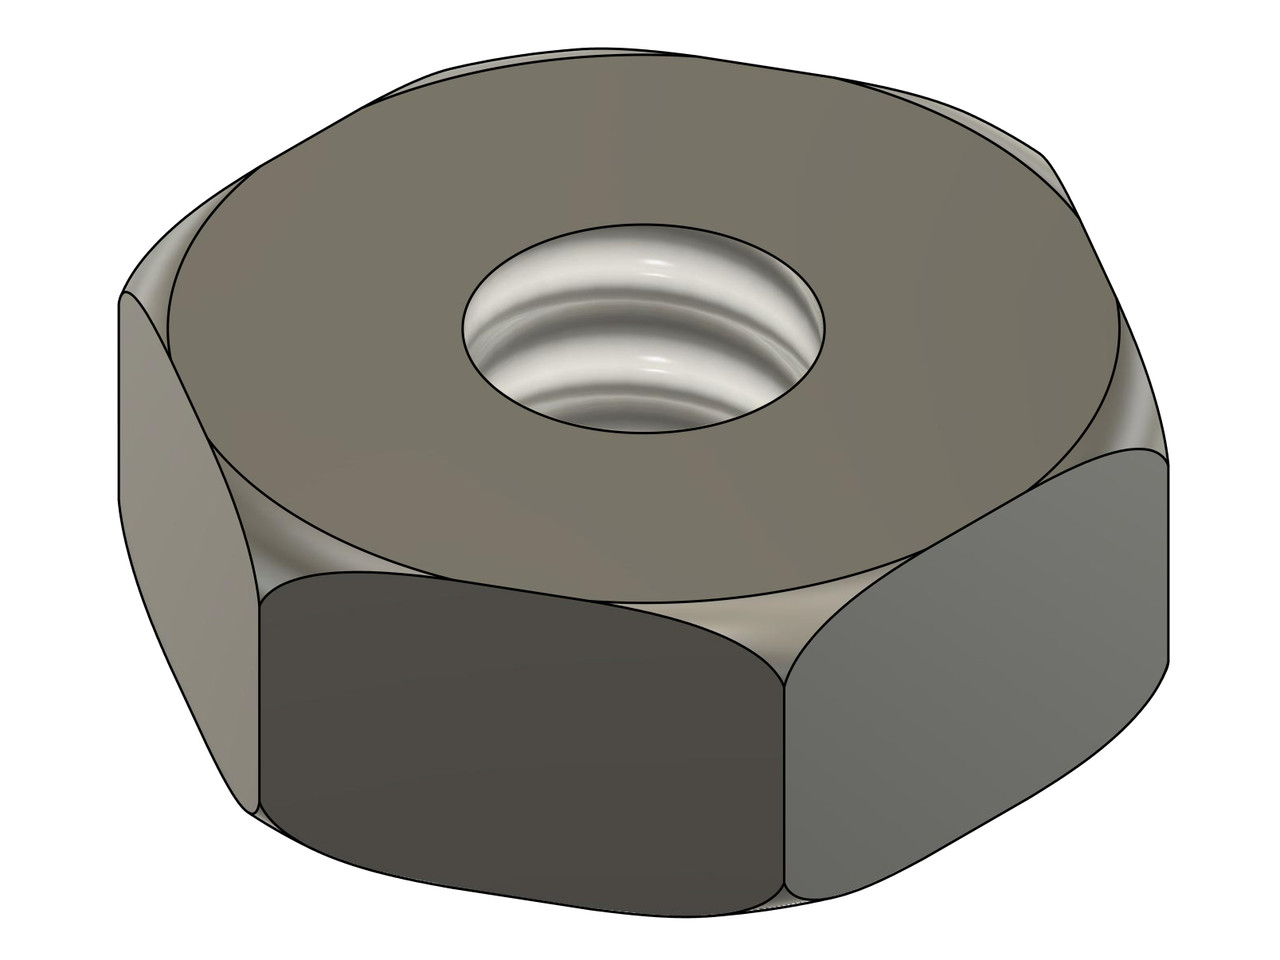 """Machine Hex Nut  Thread M1.0 (1.00UNM,) 2.0mm / .079"""" ACF (Across the Flats)  Stainless Steel #303, Silver Finish.   Hex Wrench for this item is #29237   Made on precision screw machines.     Price is for 100 count package with bulk pricing available.    Please contact sales@minitaps.com for bulk pricing pricing or any additional questions or information."""